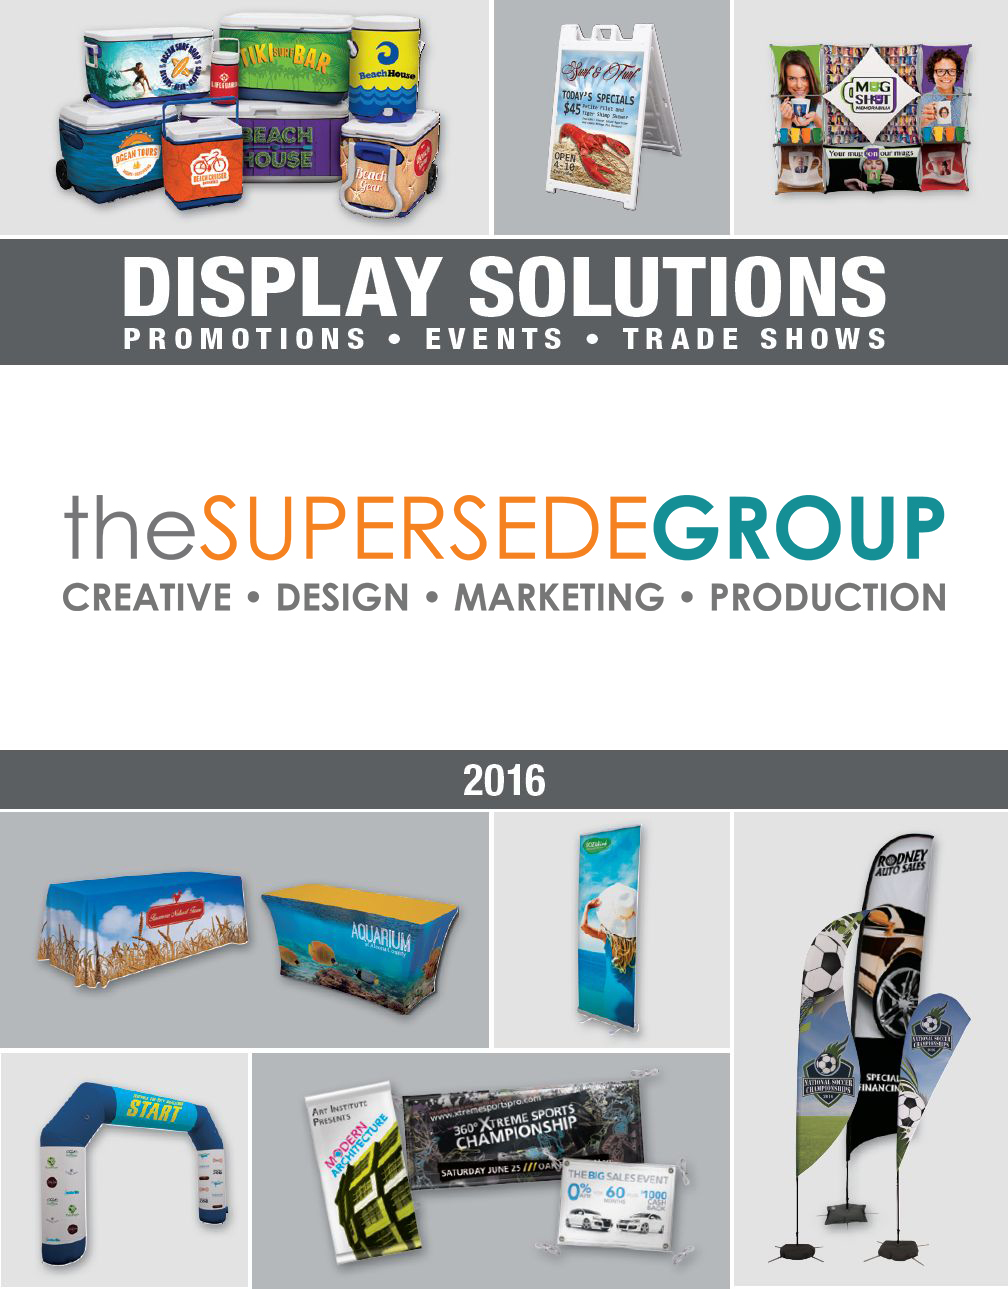 Exhibition Display Solutions : Trade show display solutions the supersede group